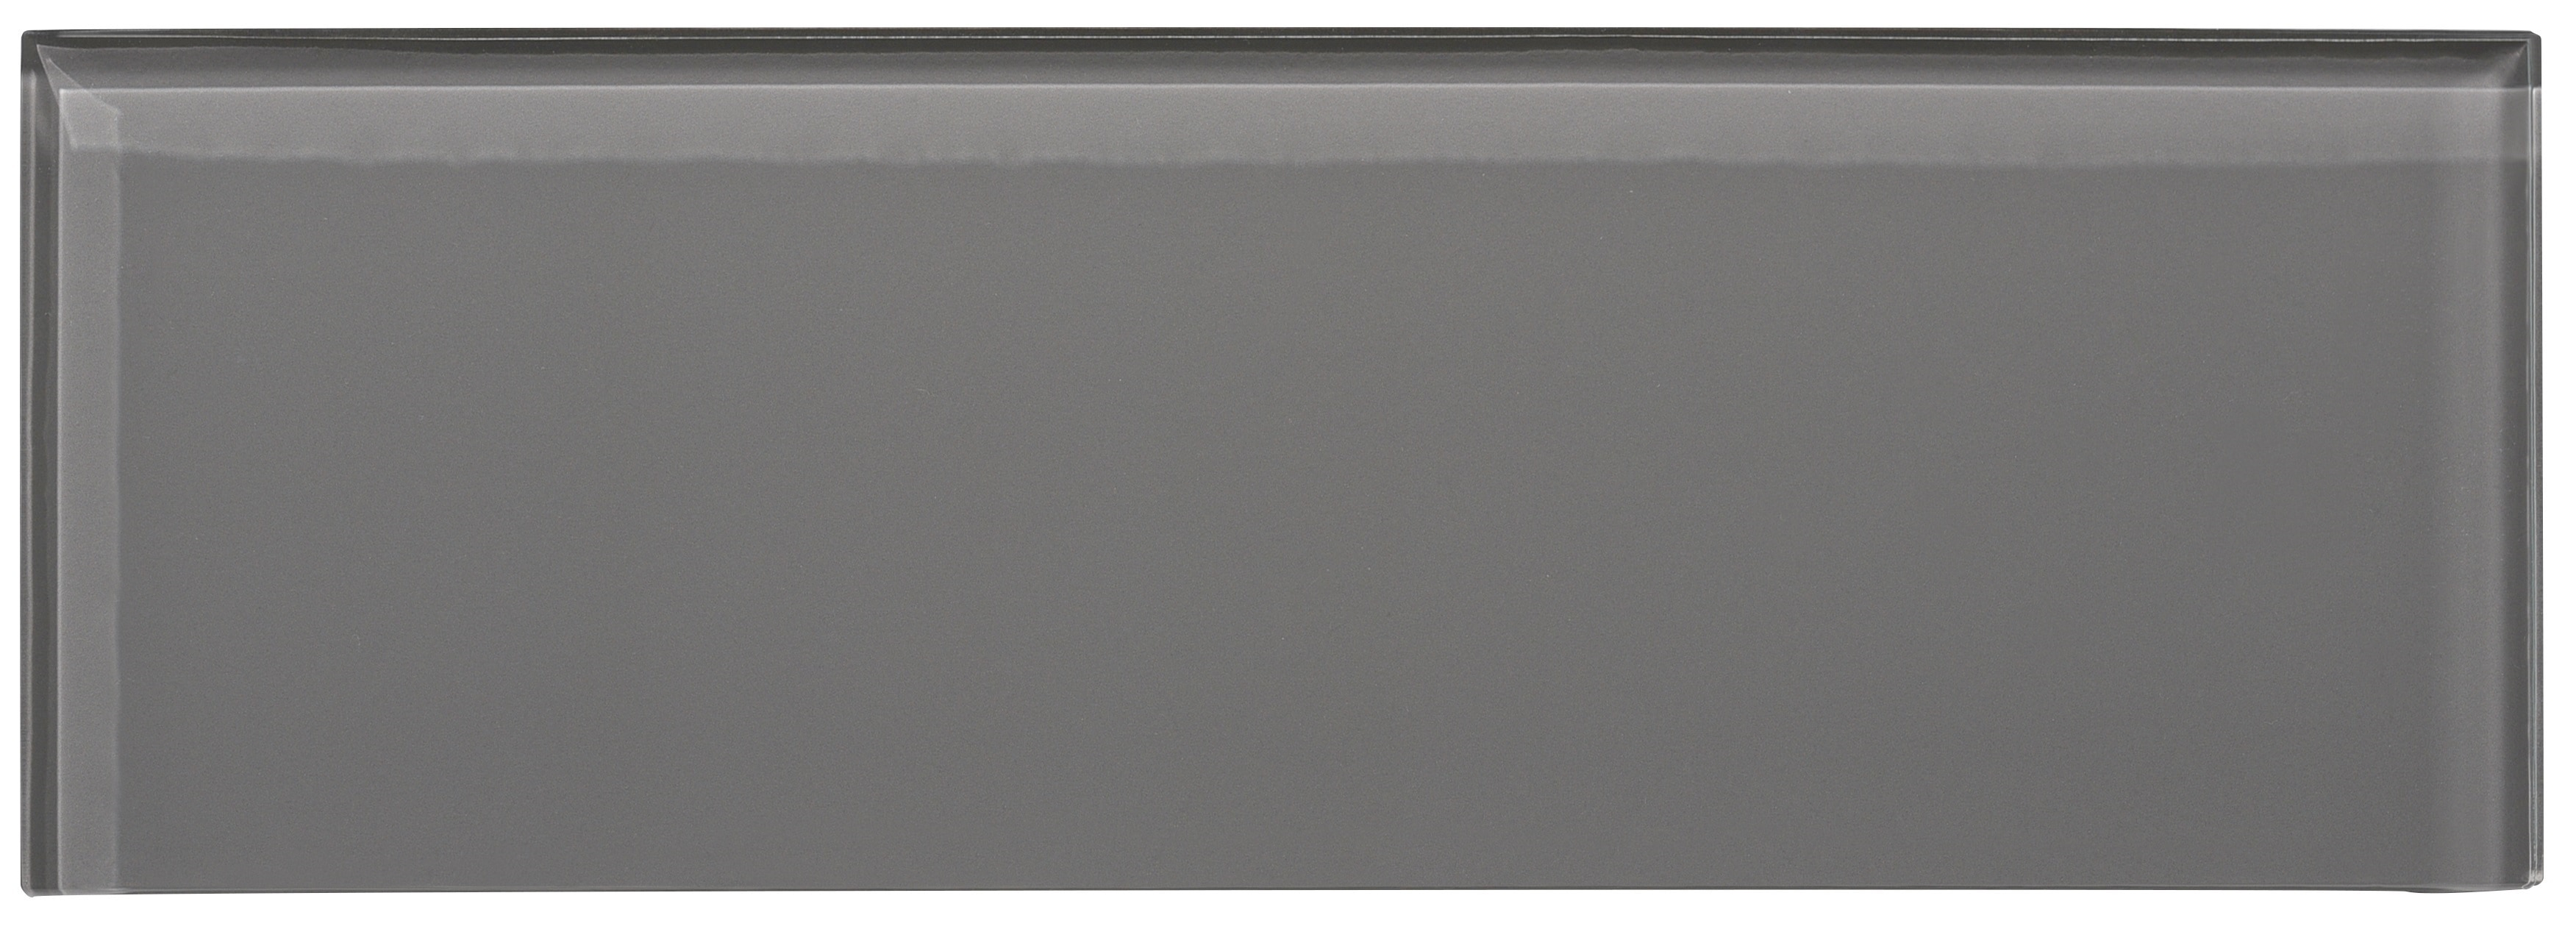 """Glass Subway Tile / 4 x 12 x 0.31 inches / Glossy Individual 4"""" X 12"""" Glass Subway Tile In Dark Gray 0"""